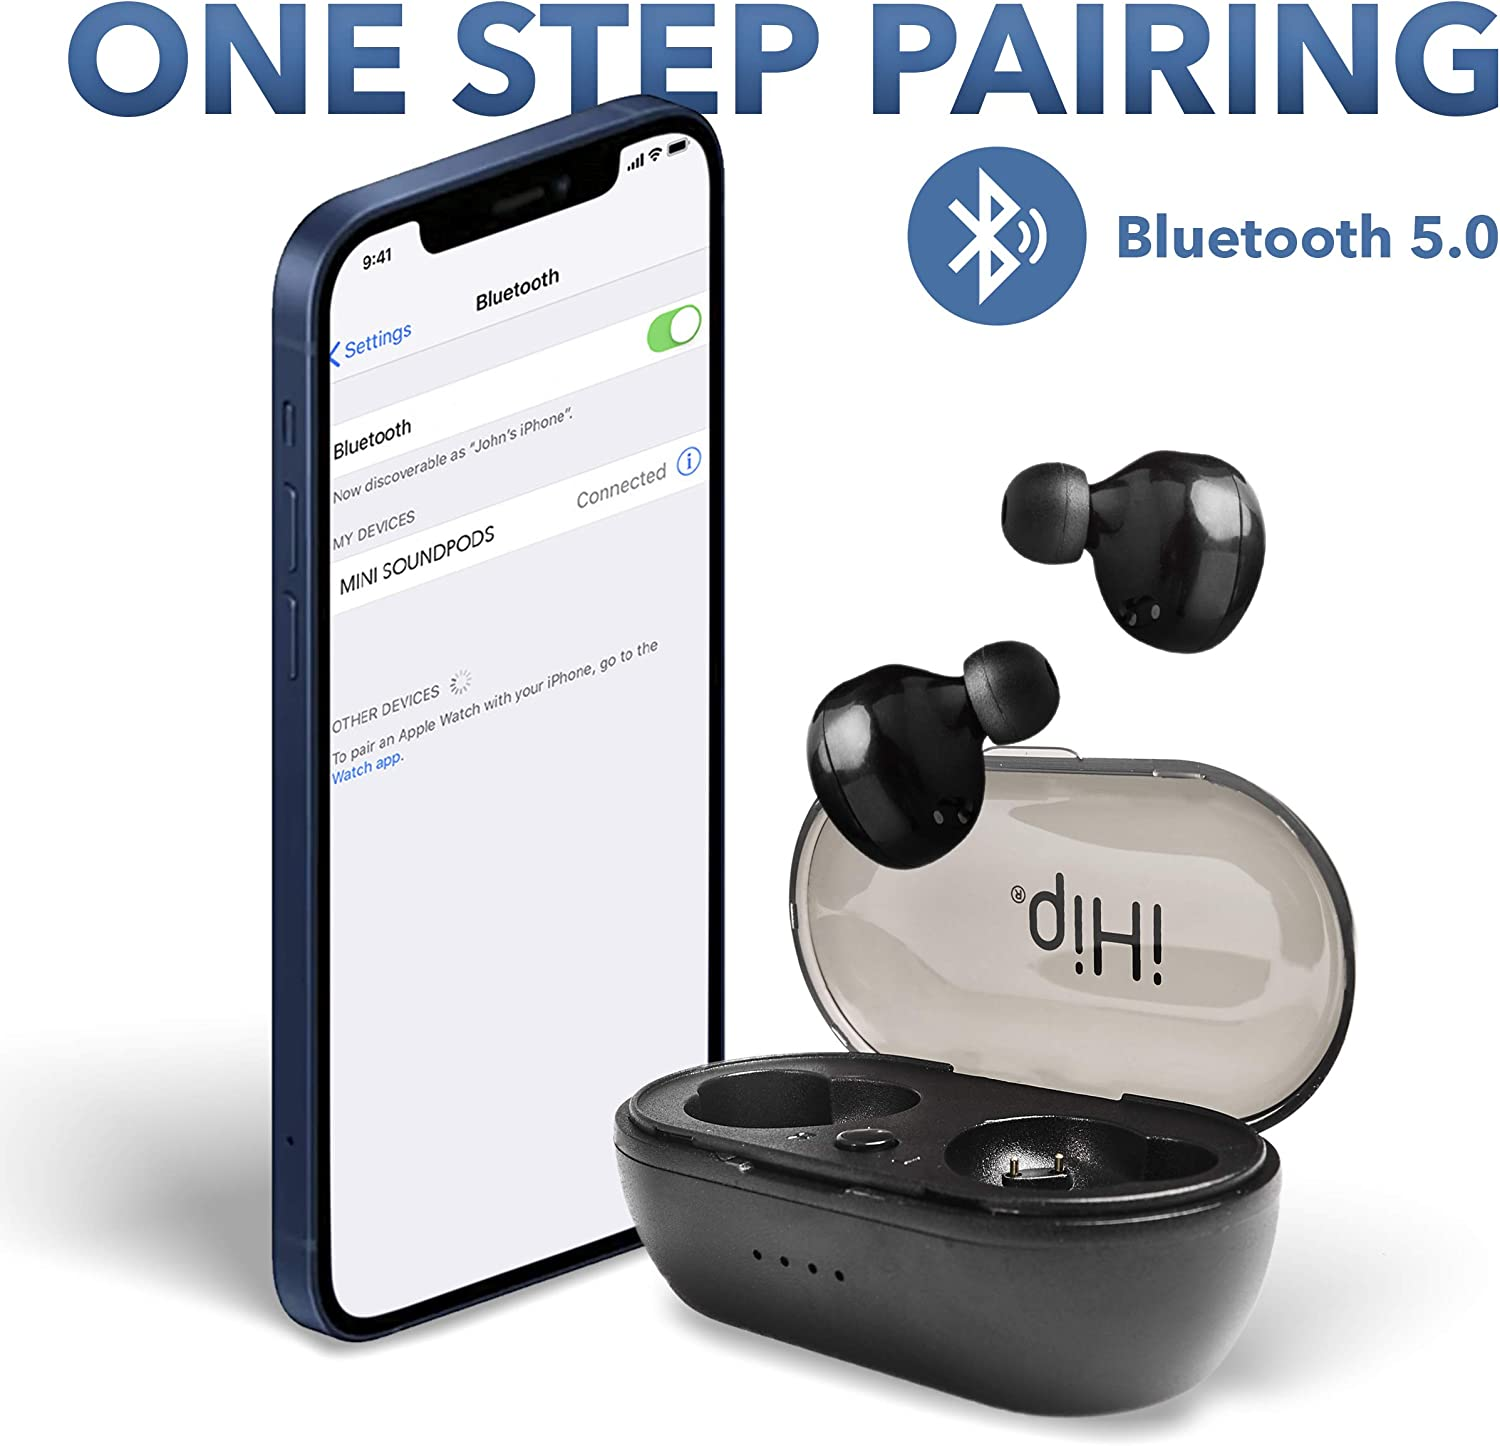 iHip Mini True Wireless Sound Pods (Black pods) with Charging Case. Bluetooth 5.0 Sweatproof Sports Earbuds Built in Microphone for iPhone Android HD Quality for Work/Running/Travel/Gym/Sports